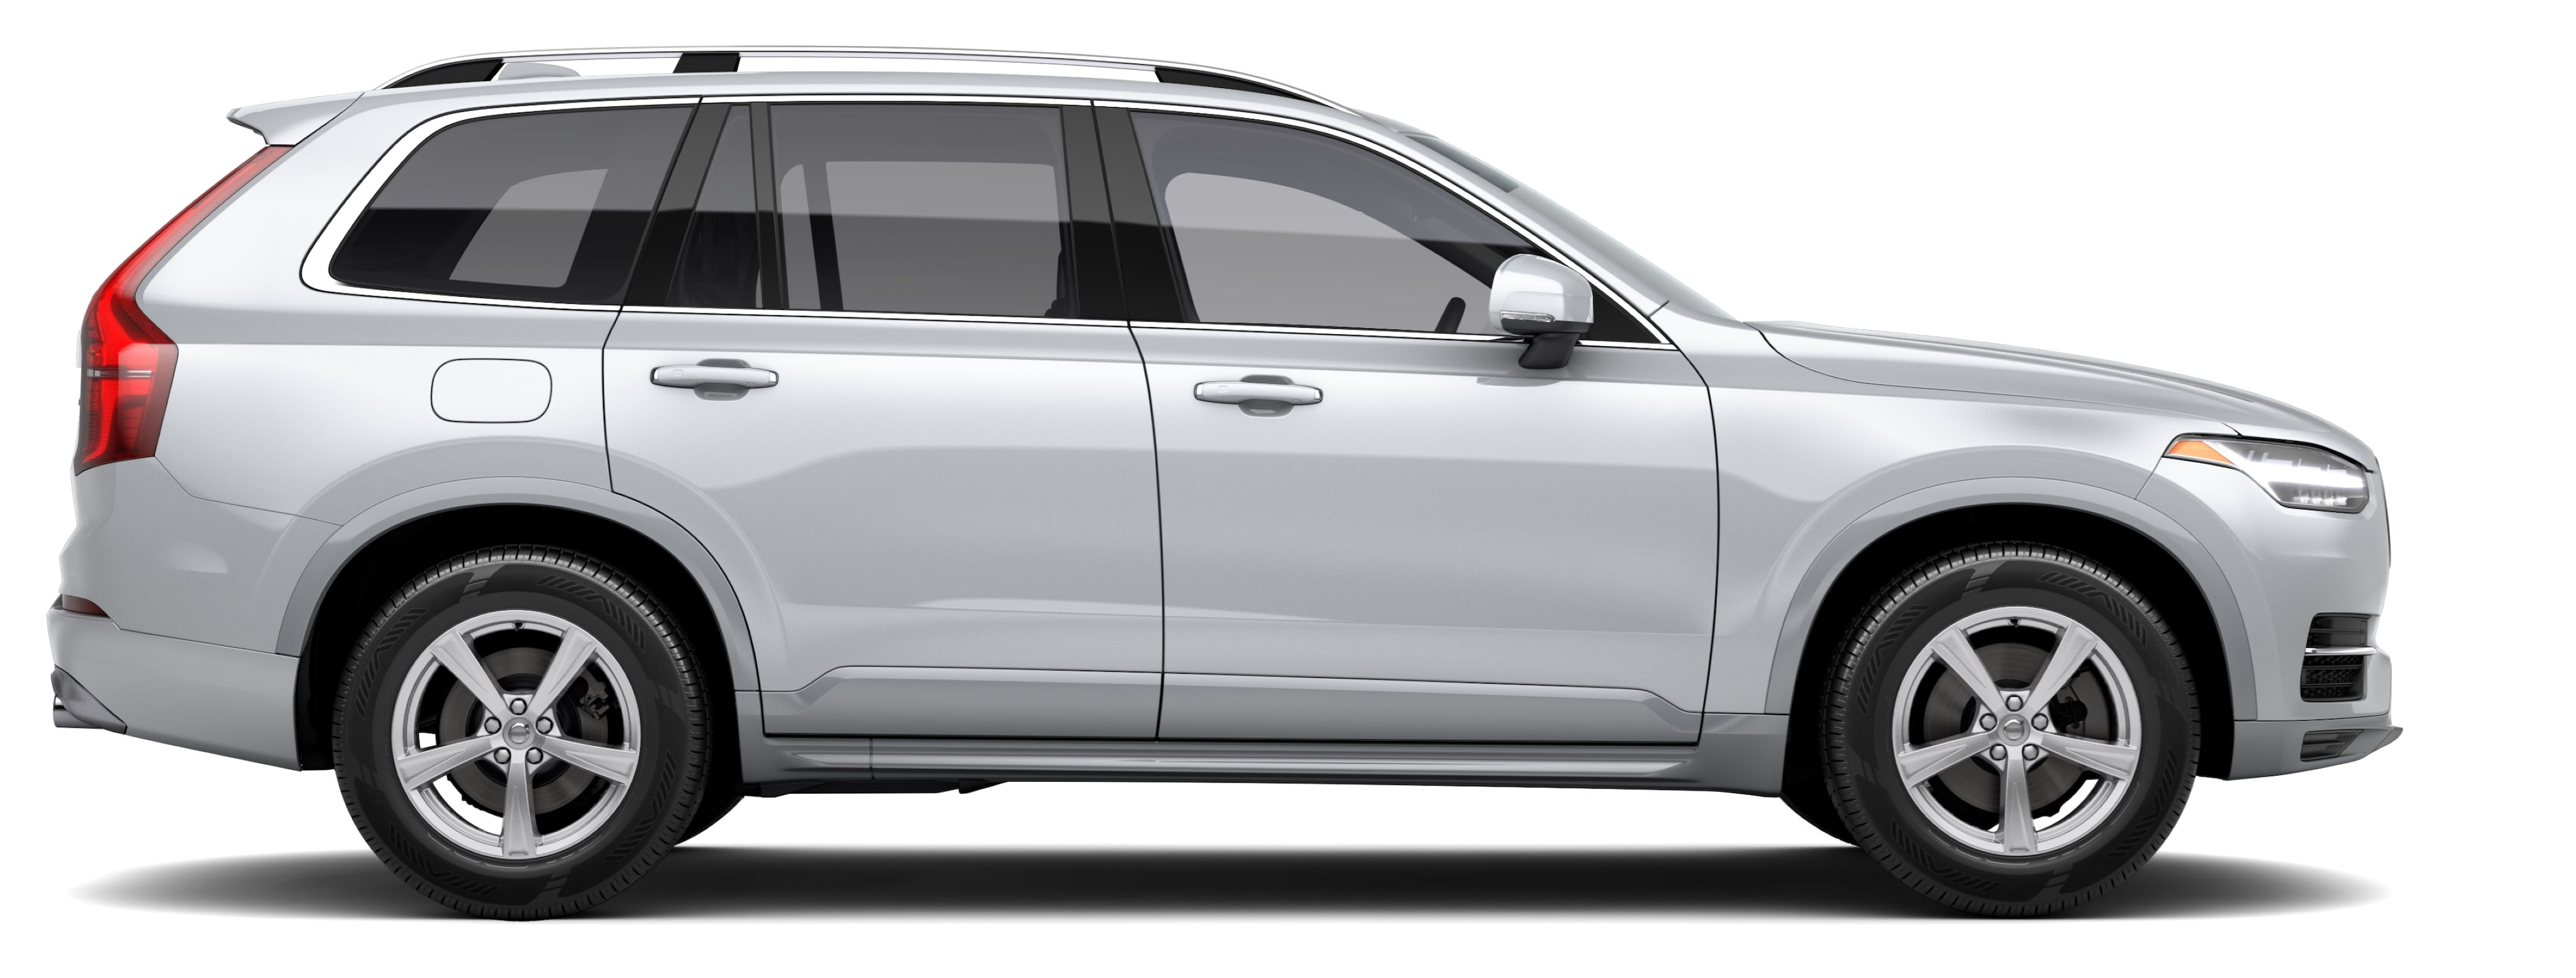 xc 90 model research